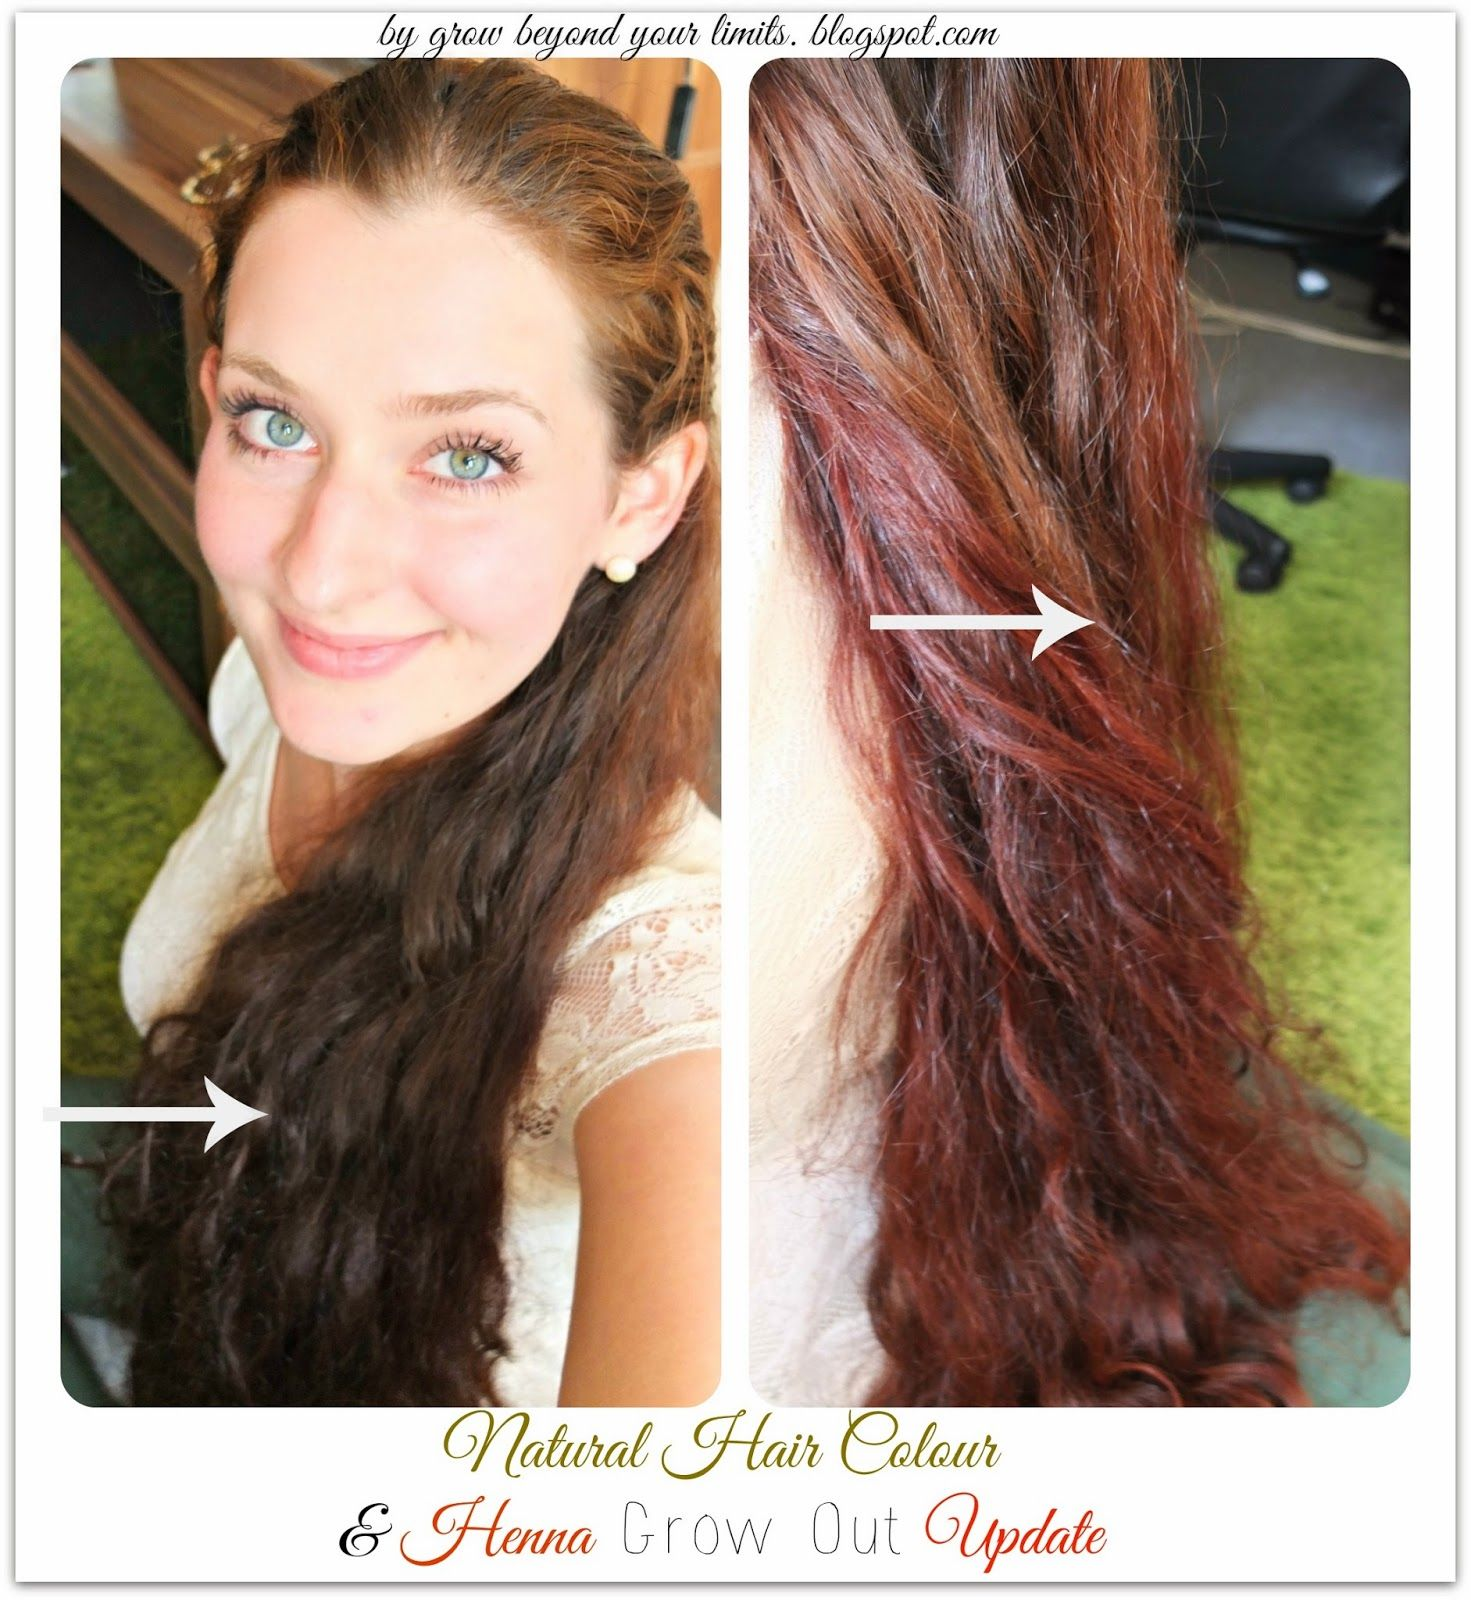 Natural Hair Colour Update Growing Out Henna Natural Hair Styles Natural Hair Color Long Hair Blog